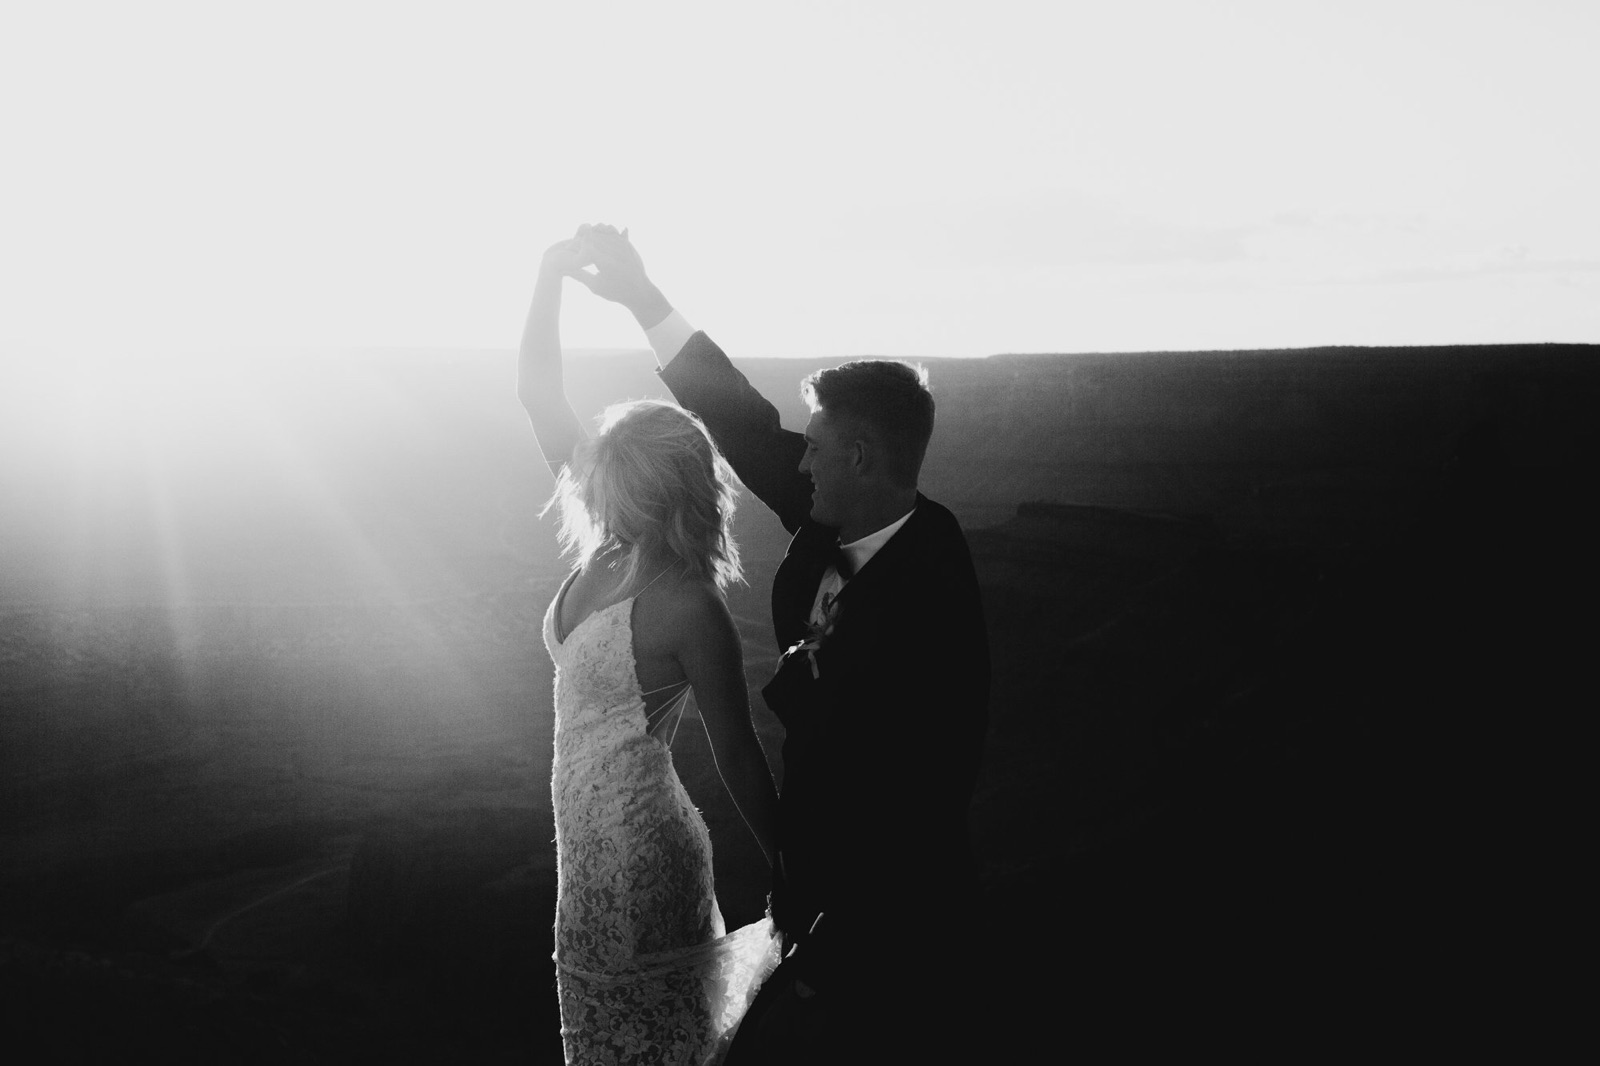 Kylie+Tyler-sunset-87.jpg.jpeg